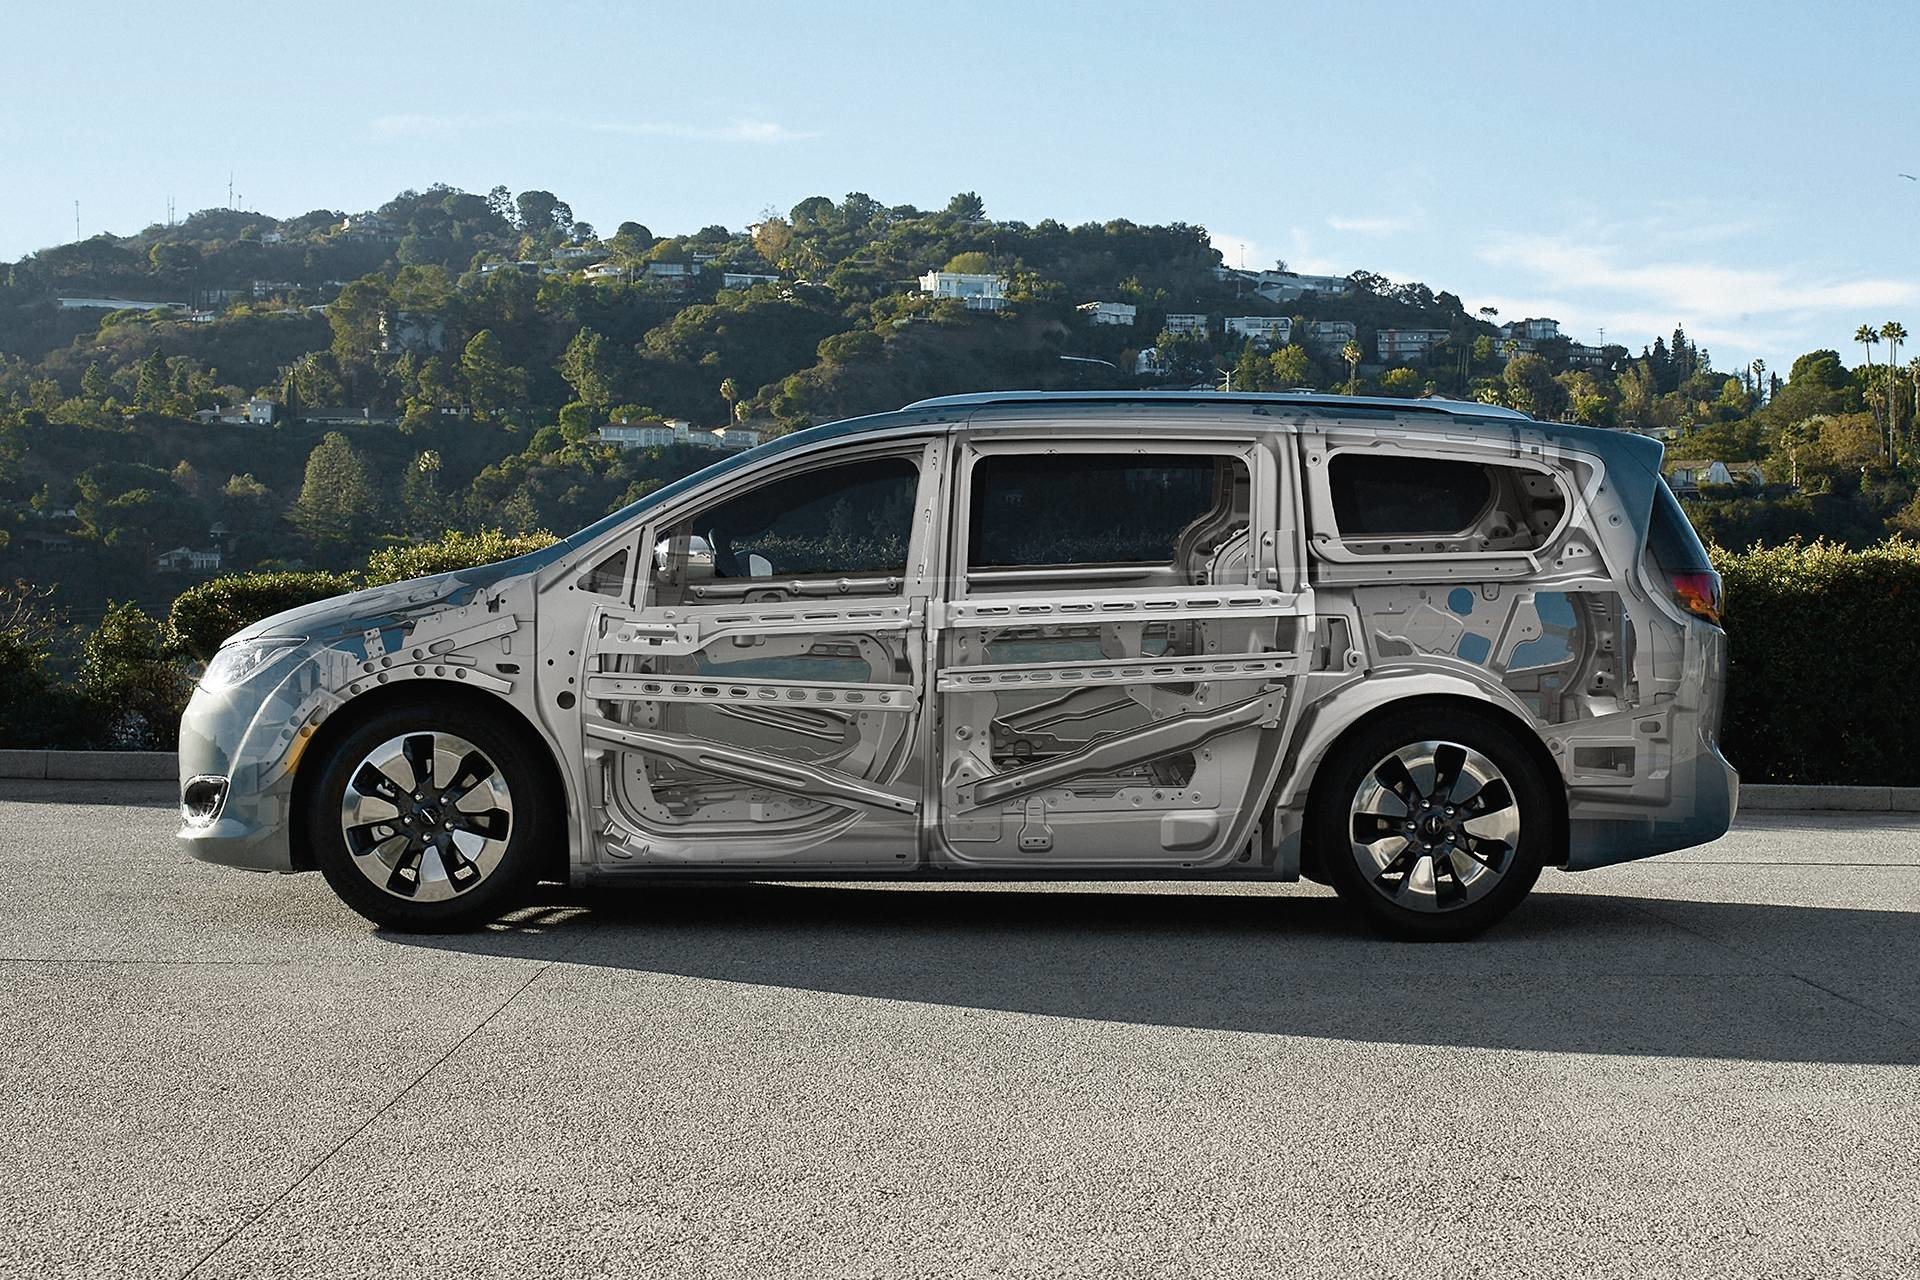 2019 Chrysler Pacifica Hybrid exterior sideview showing steel safety cage